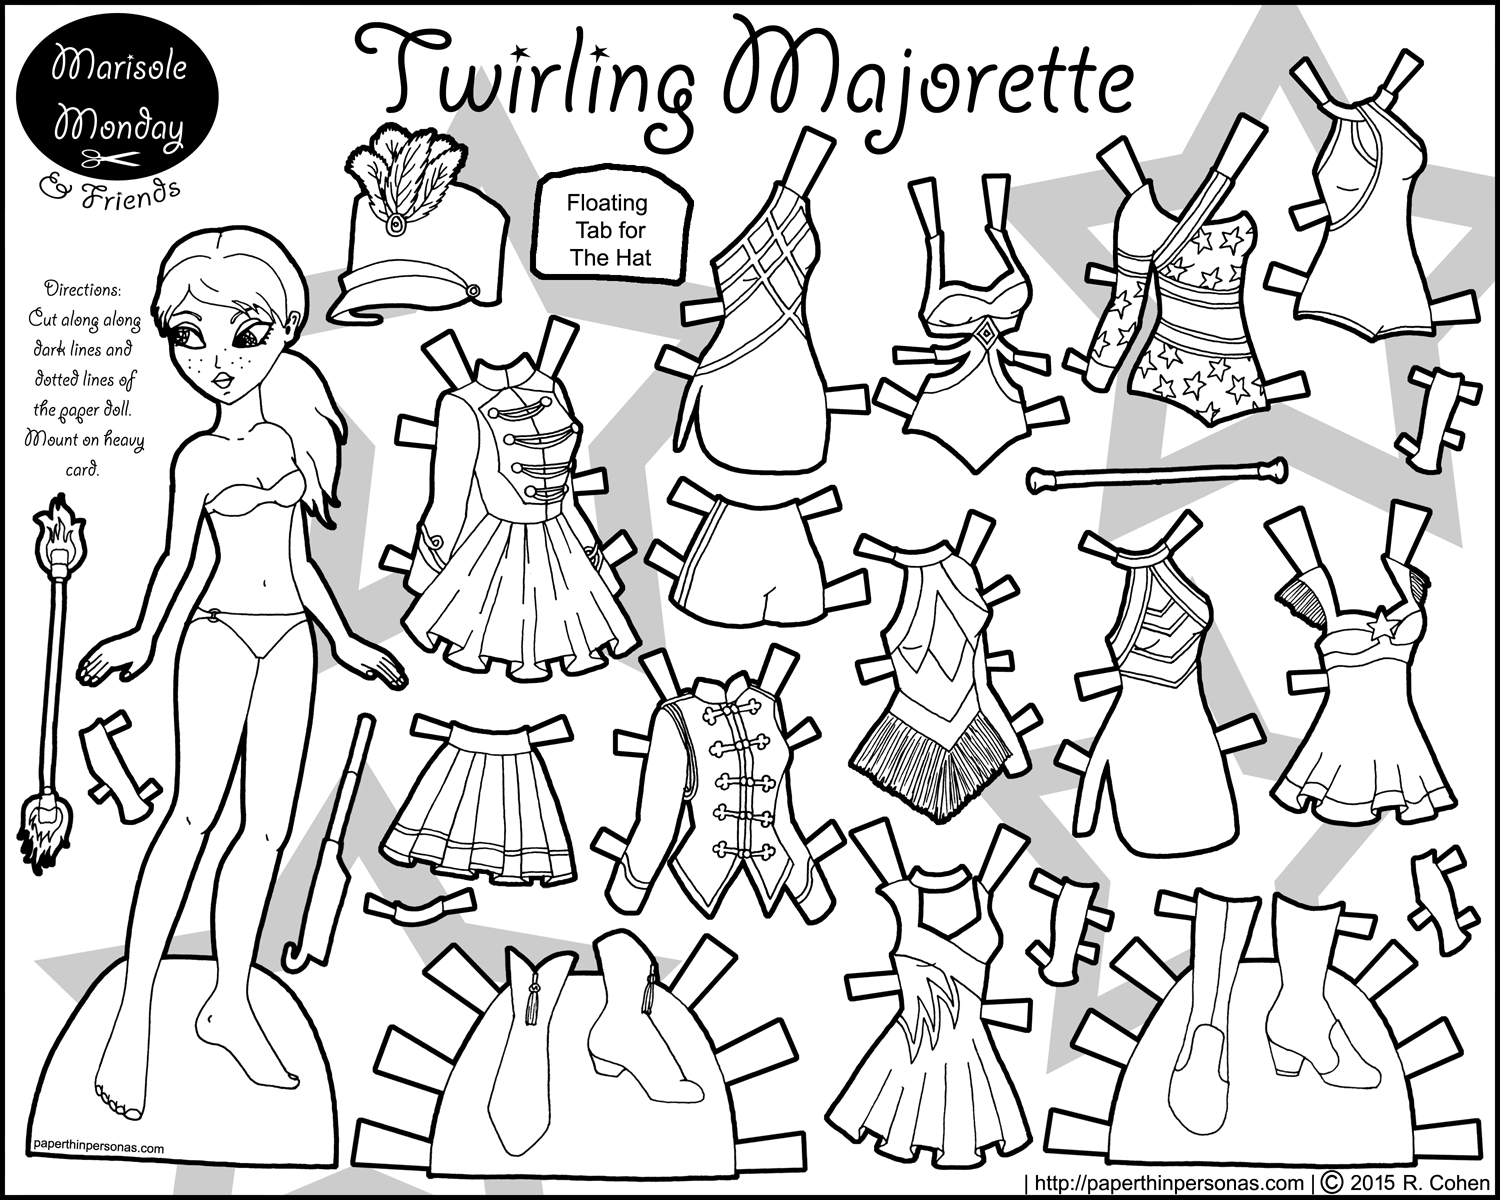 Fancy Marisole Monday Paper Doll Coloring Pages Images - Example ...